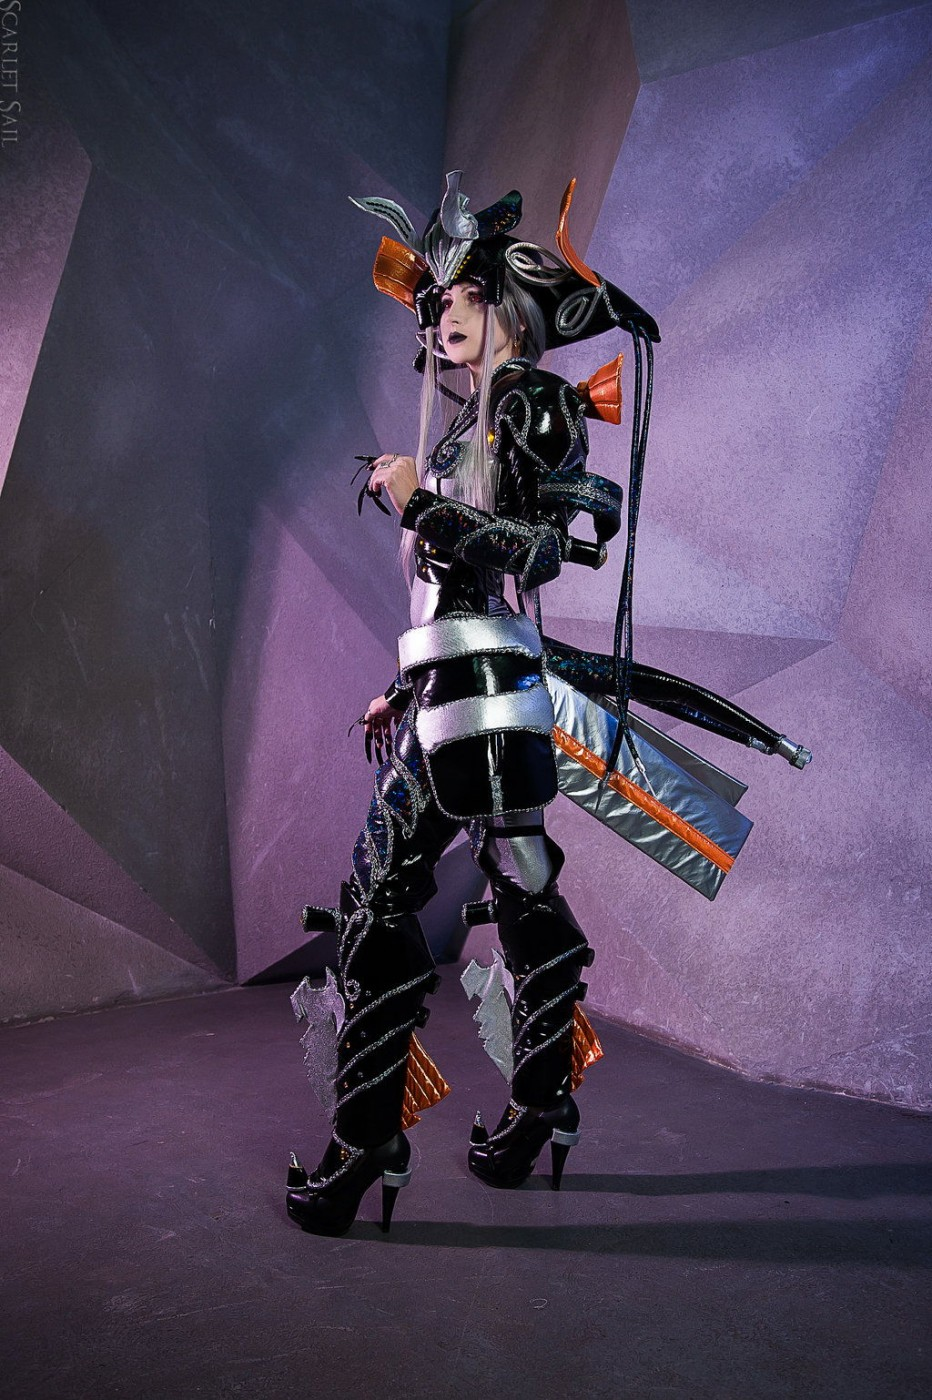 Meyneth-and-Vanea-Xenoblade-Cosplay-Gamers-Heroes-1.jpg